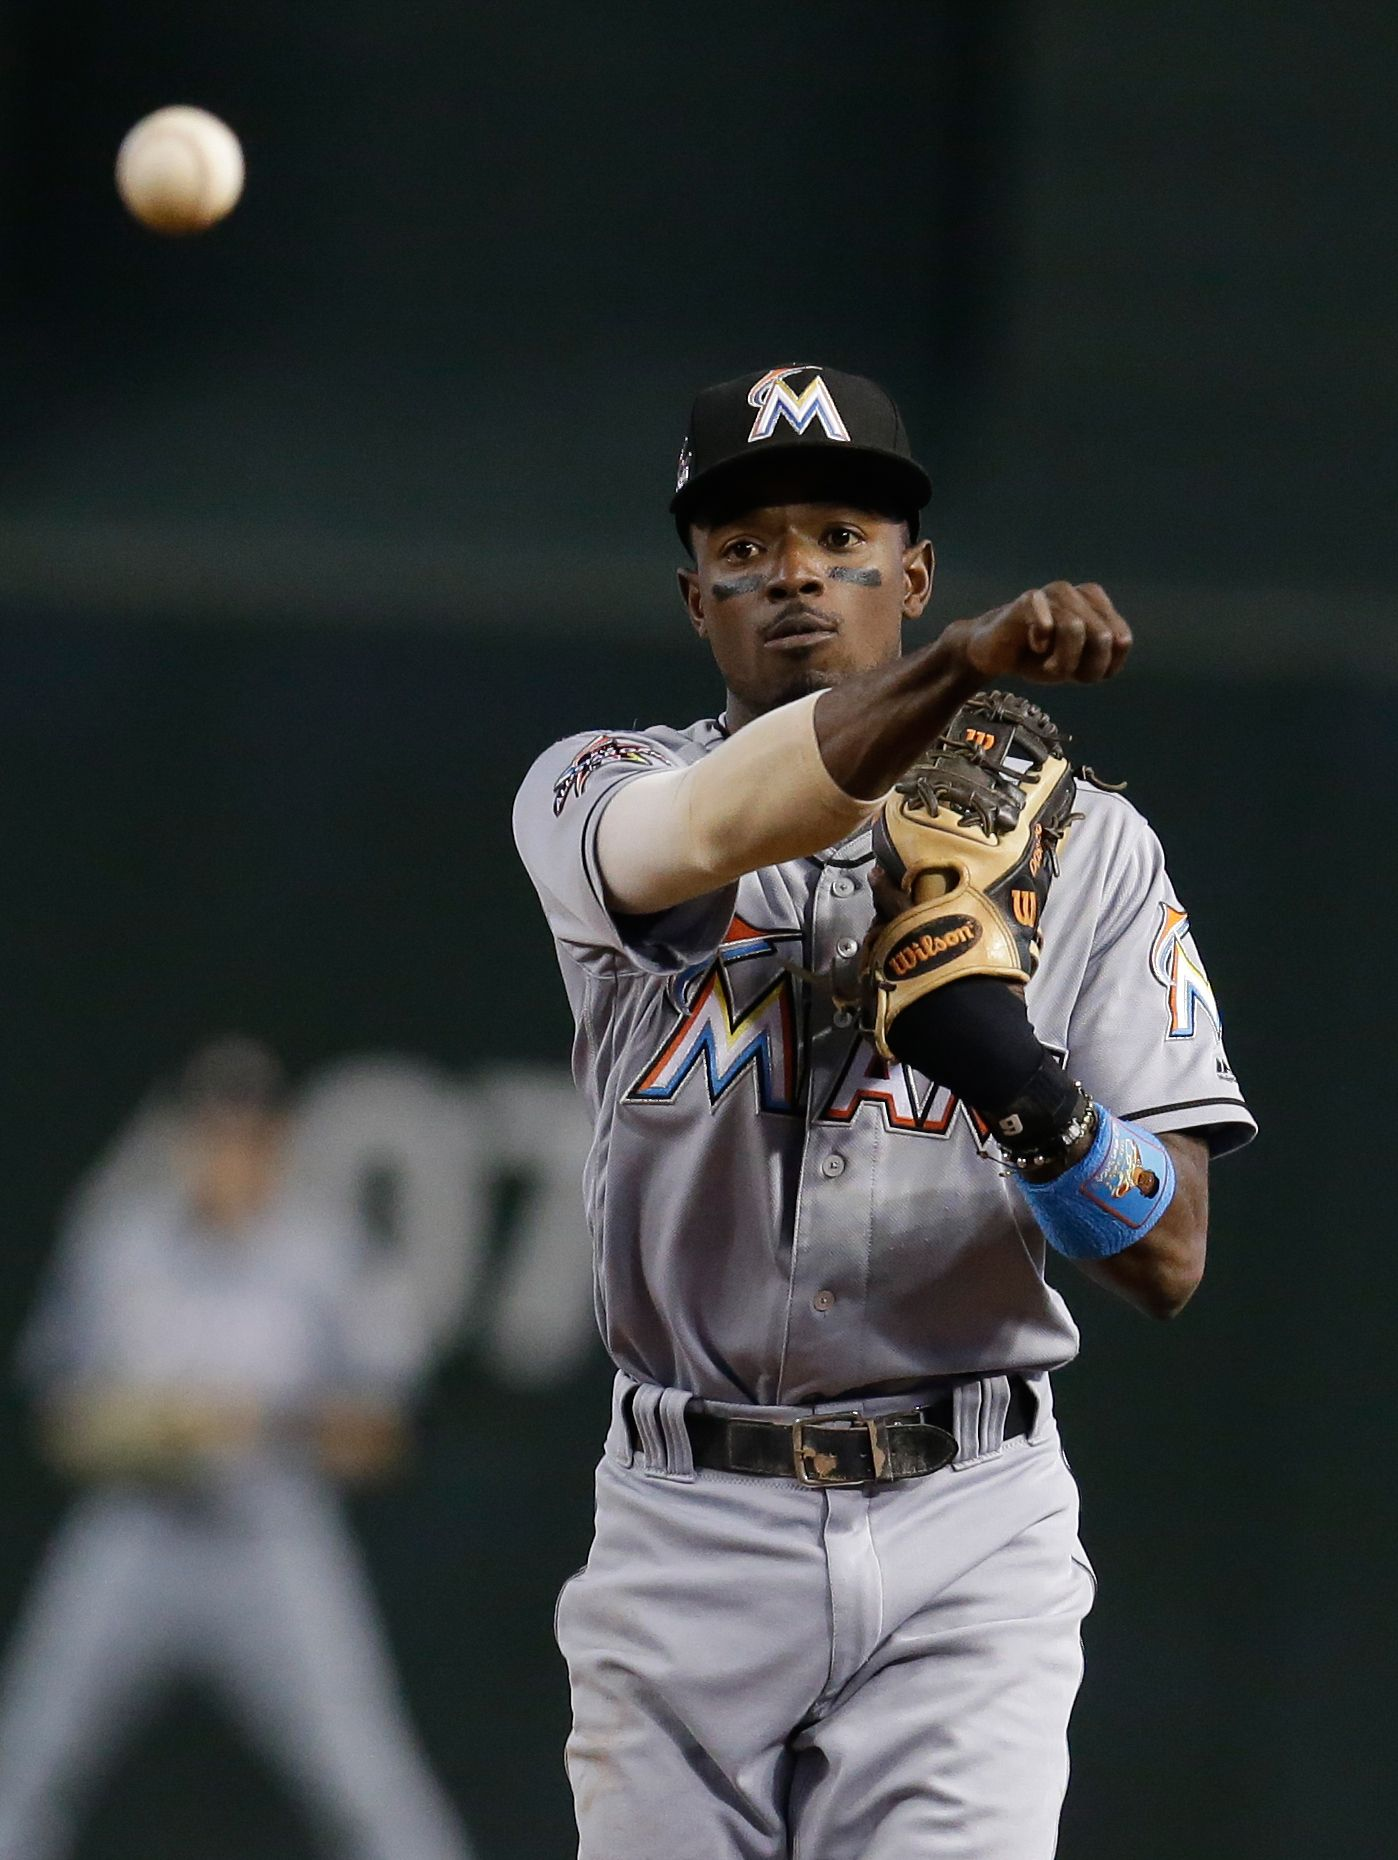 Mariners acquire 2B Dee Gordon in trade with Marlins